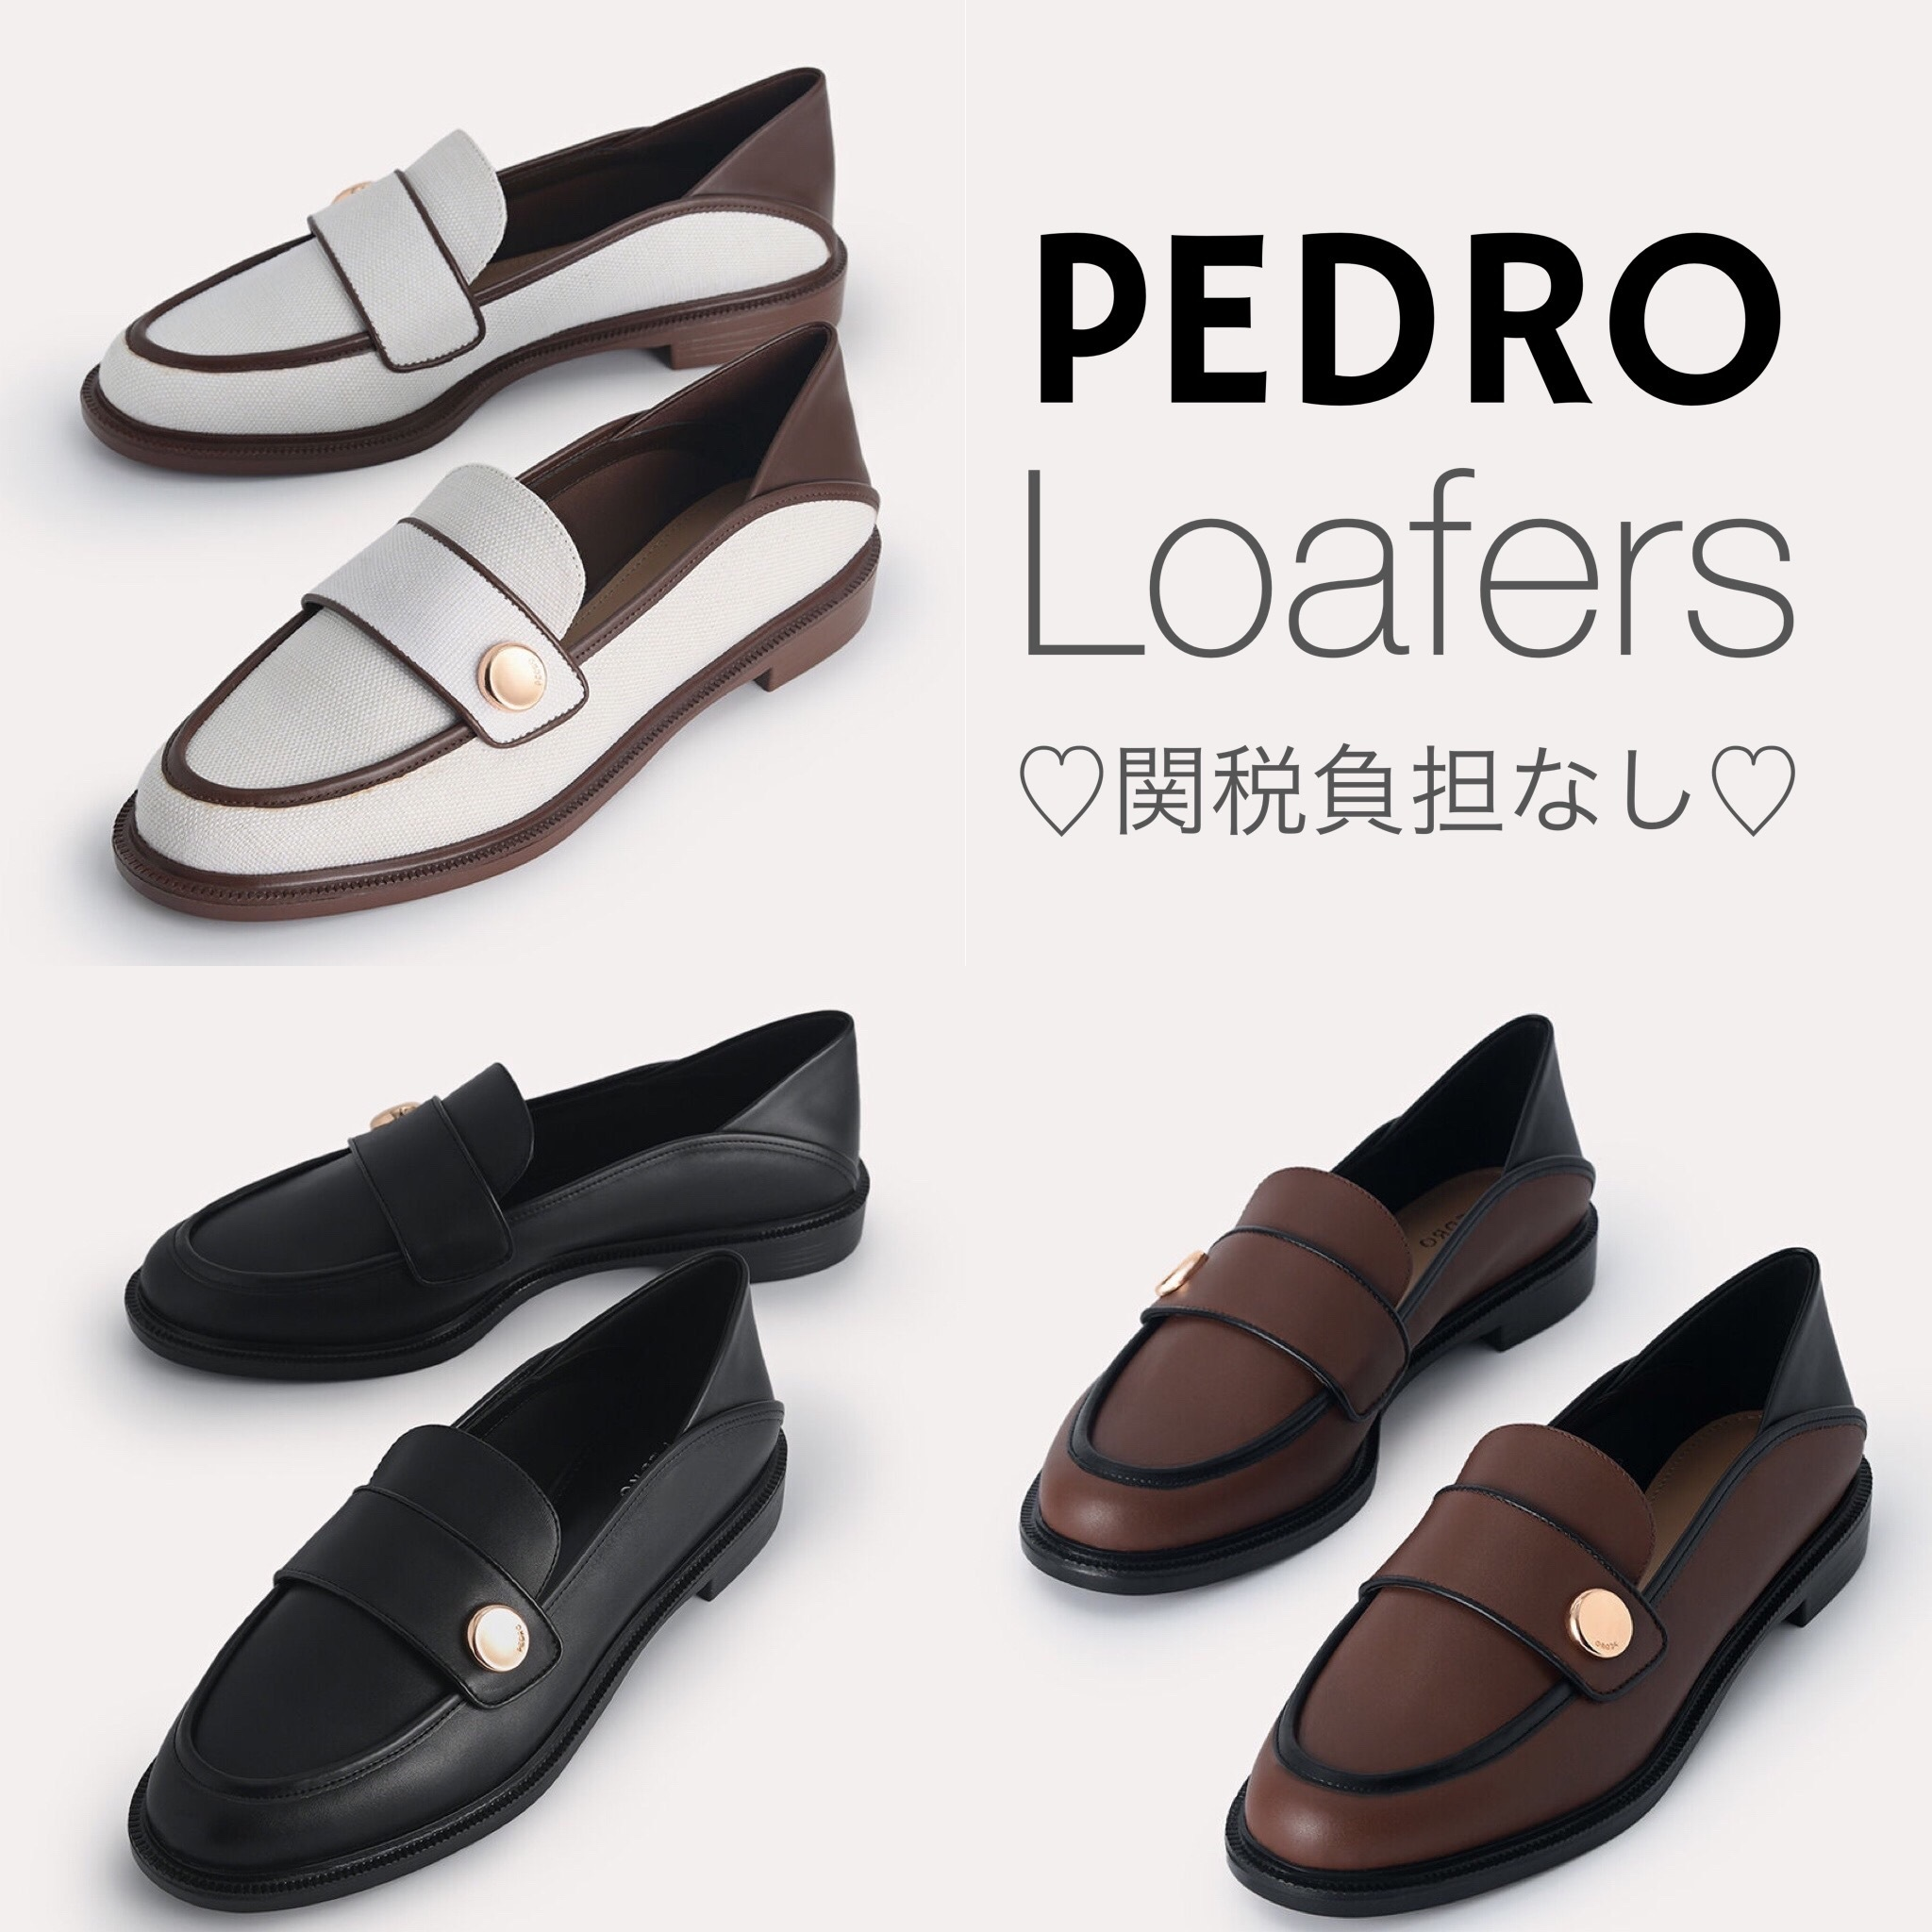 shop pedro shoes